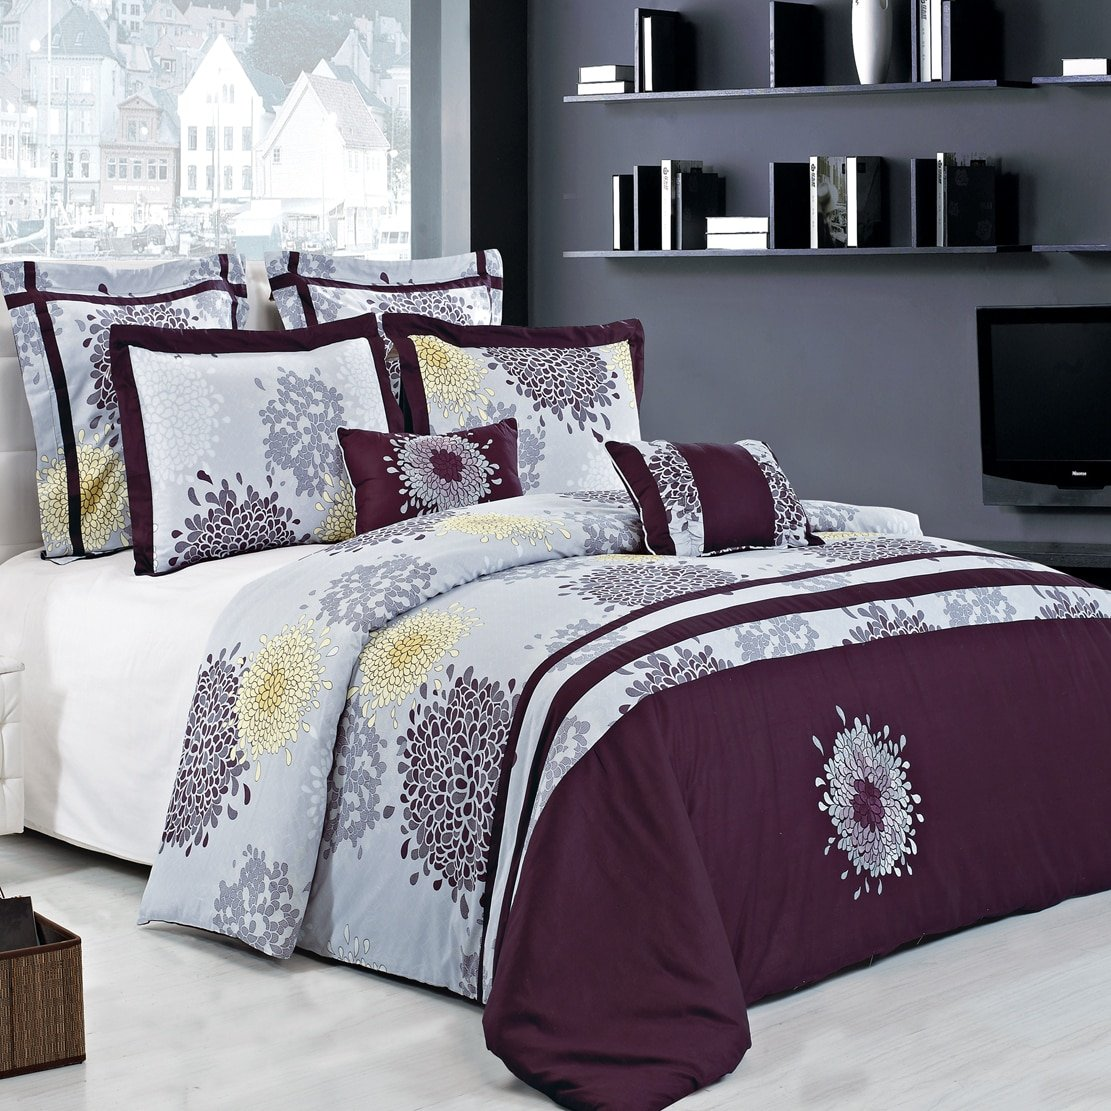 King Size Fifi Lilac and Plum 14PC Bed in a Bag set including: 7pc Duvet Cover Set, 1pc Down Alternative Comforter, set of 2 Down Alternative Pillows and a 4pc Sheet Set.